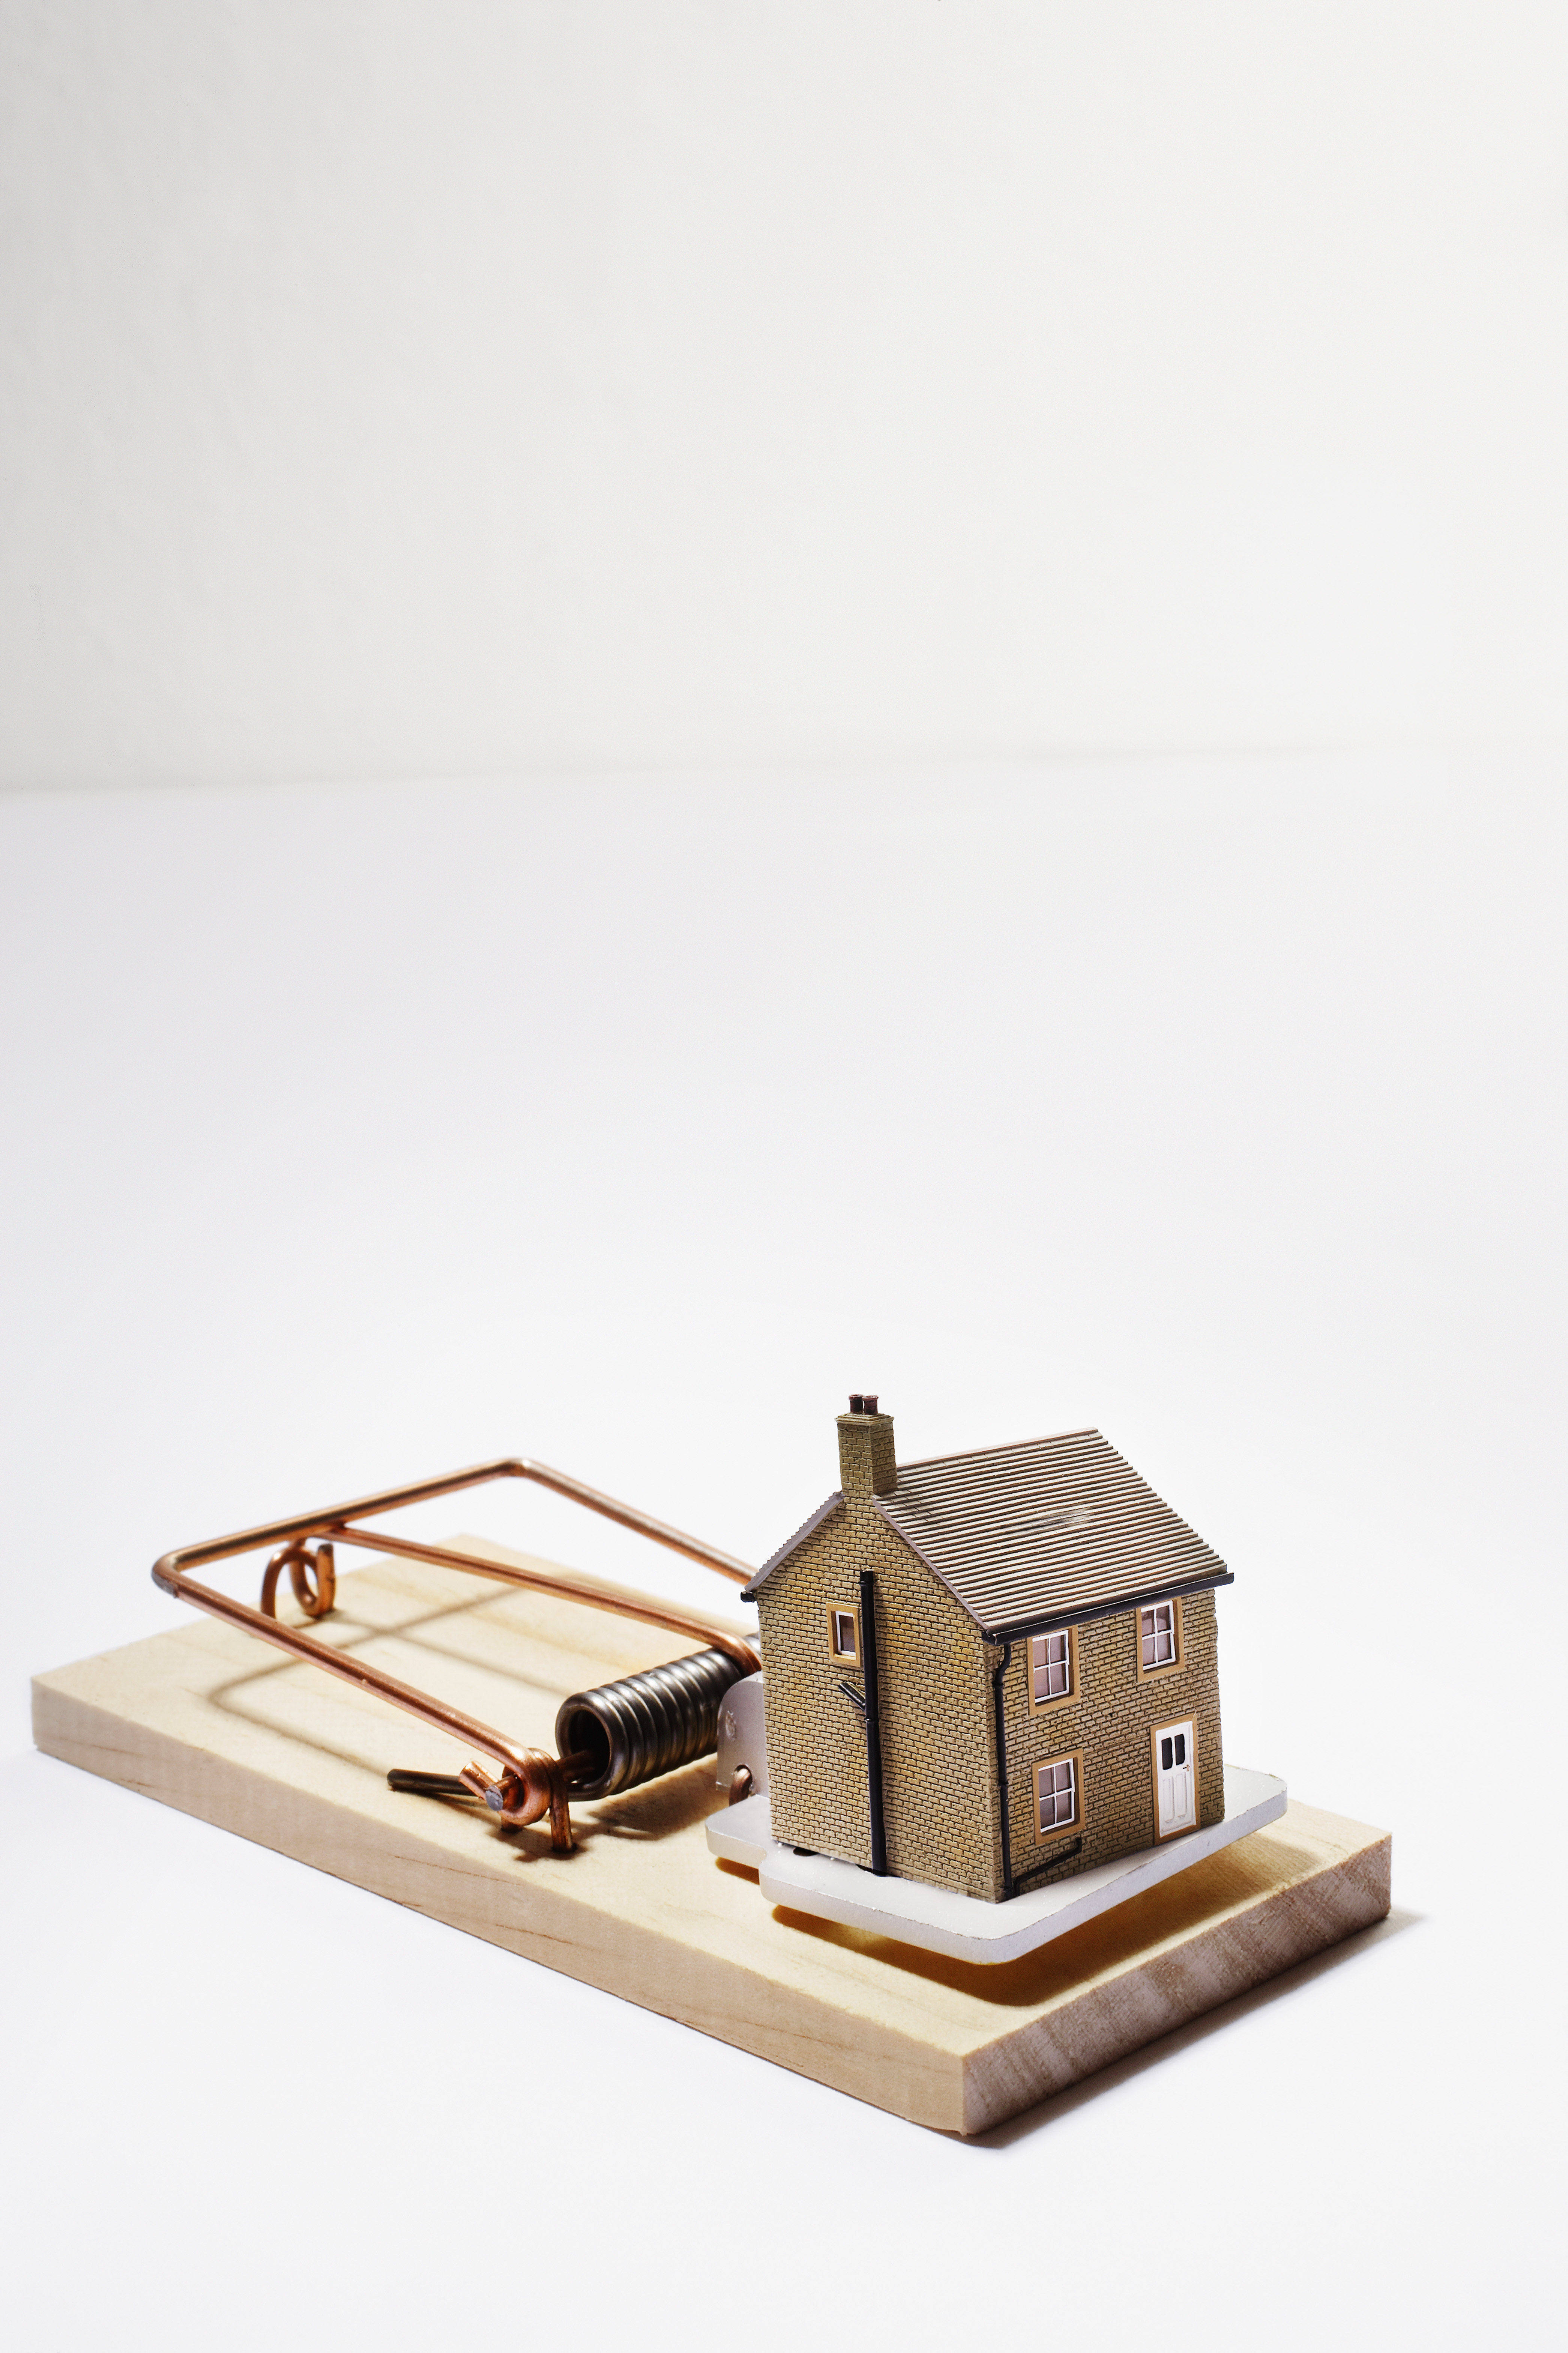 house on mouse trap